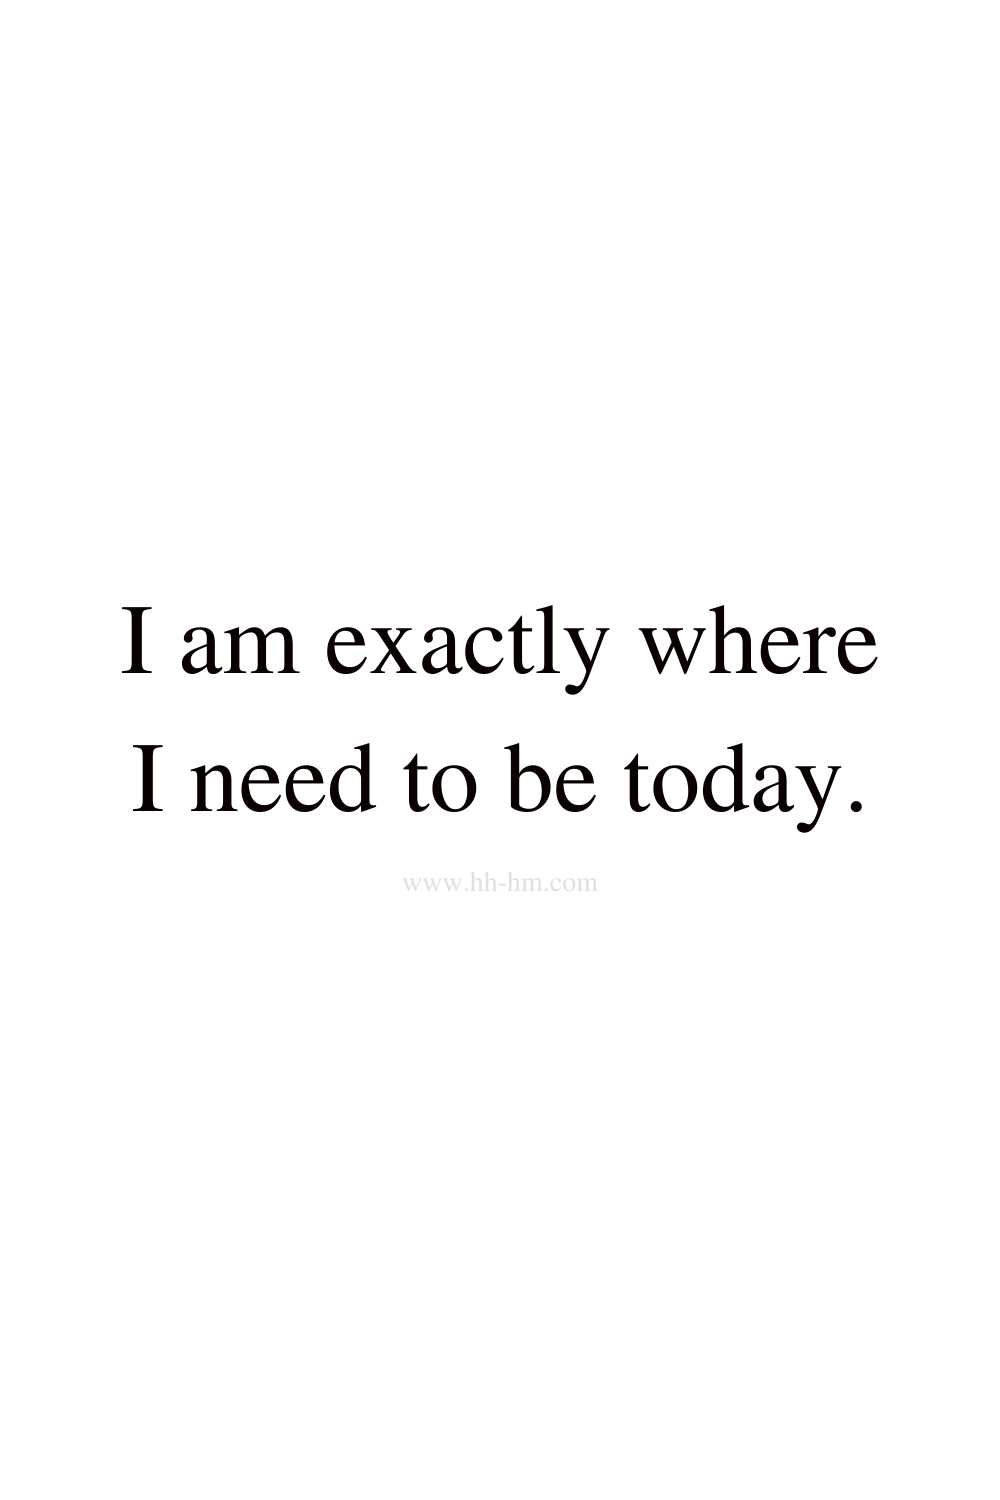 I am exactly where I need to be today - morning affirmations